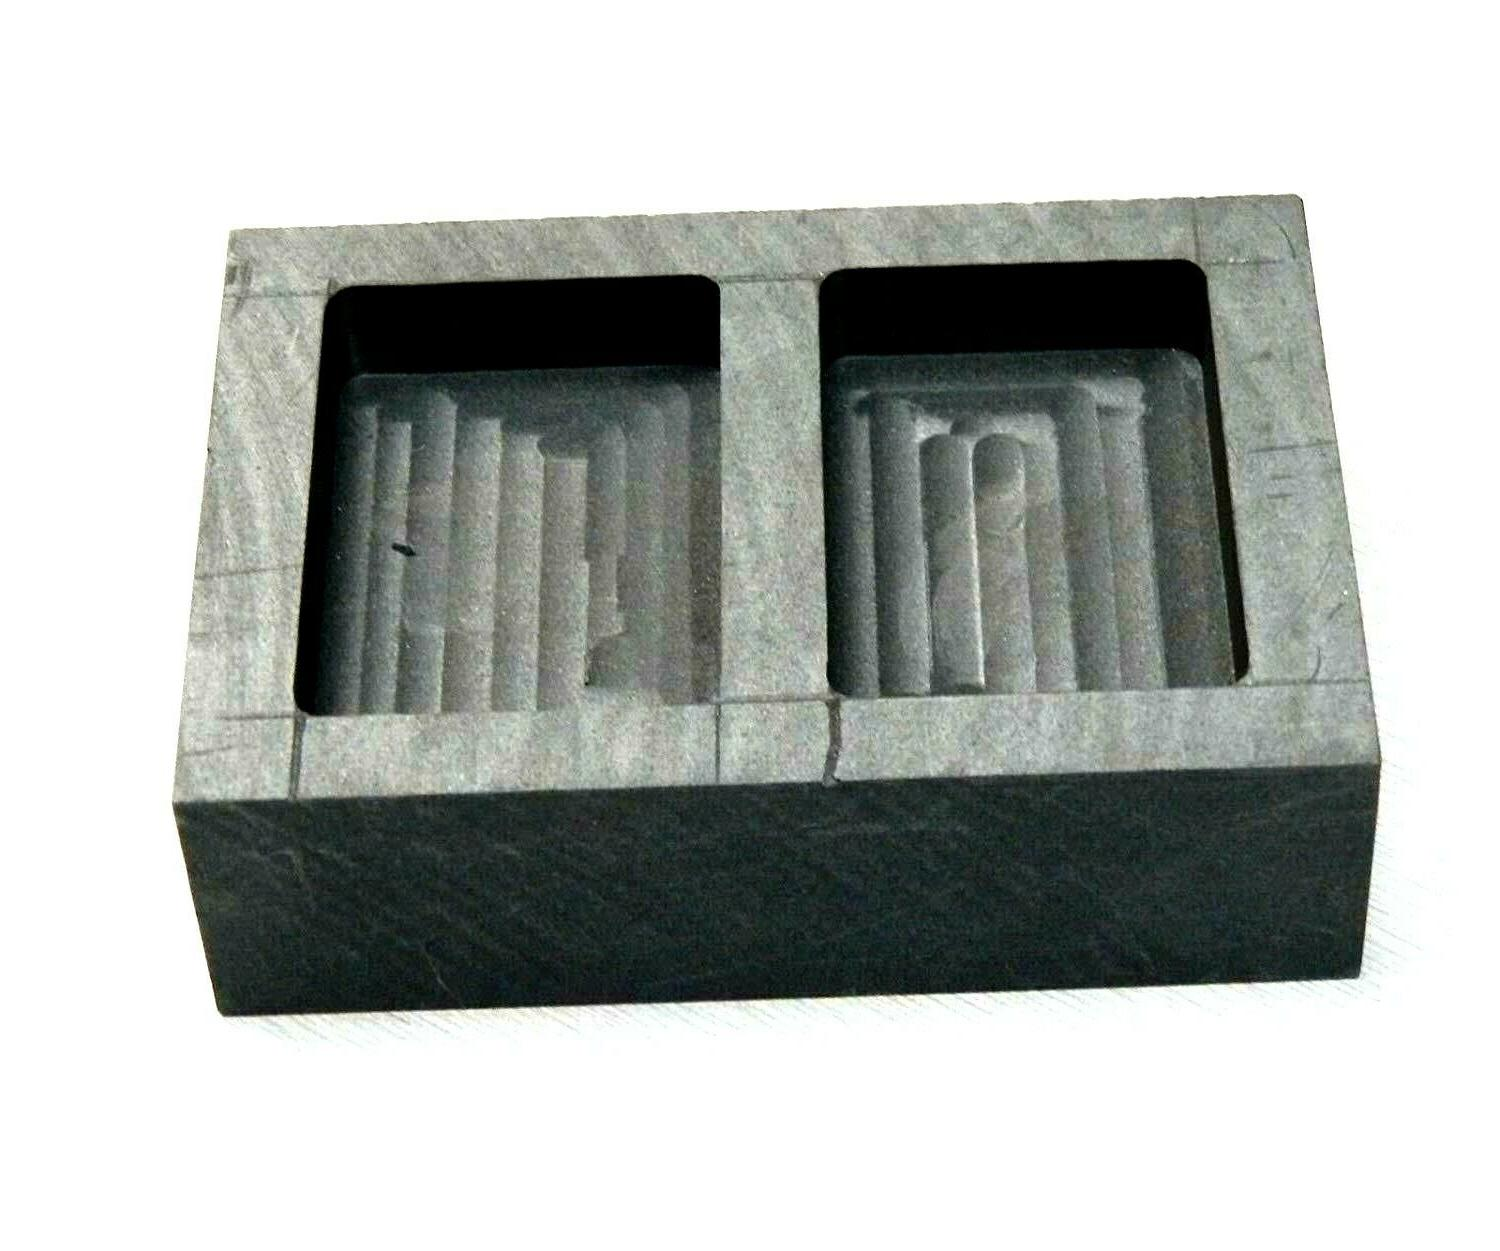 Graphite Mold & Pour Bars Silver Cavity Melting